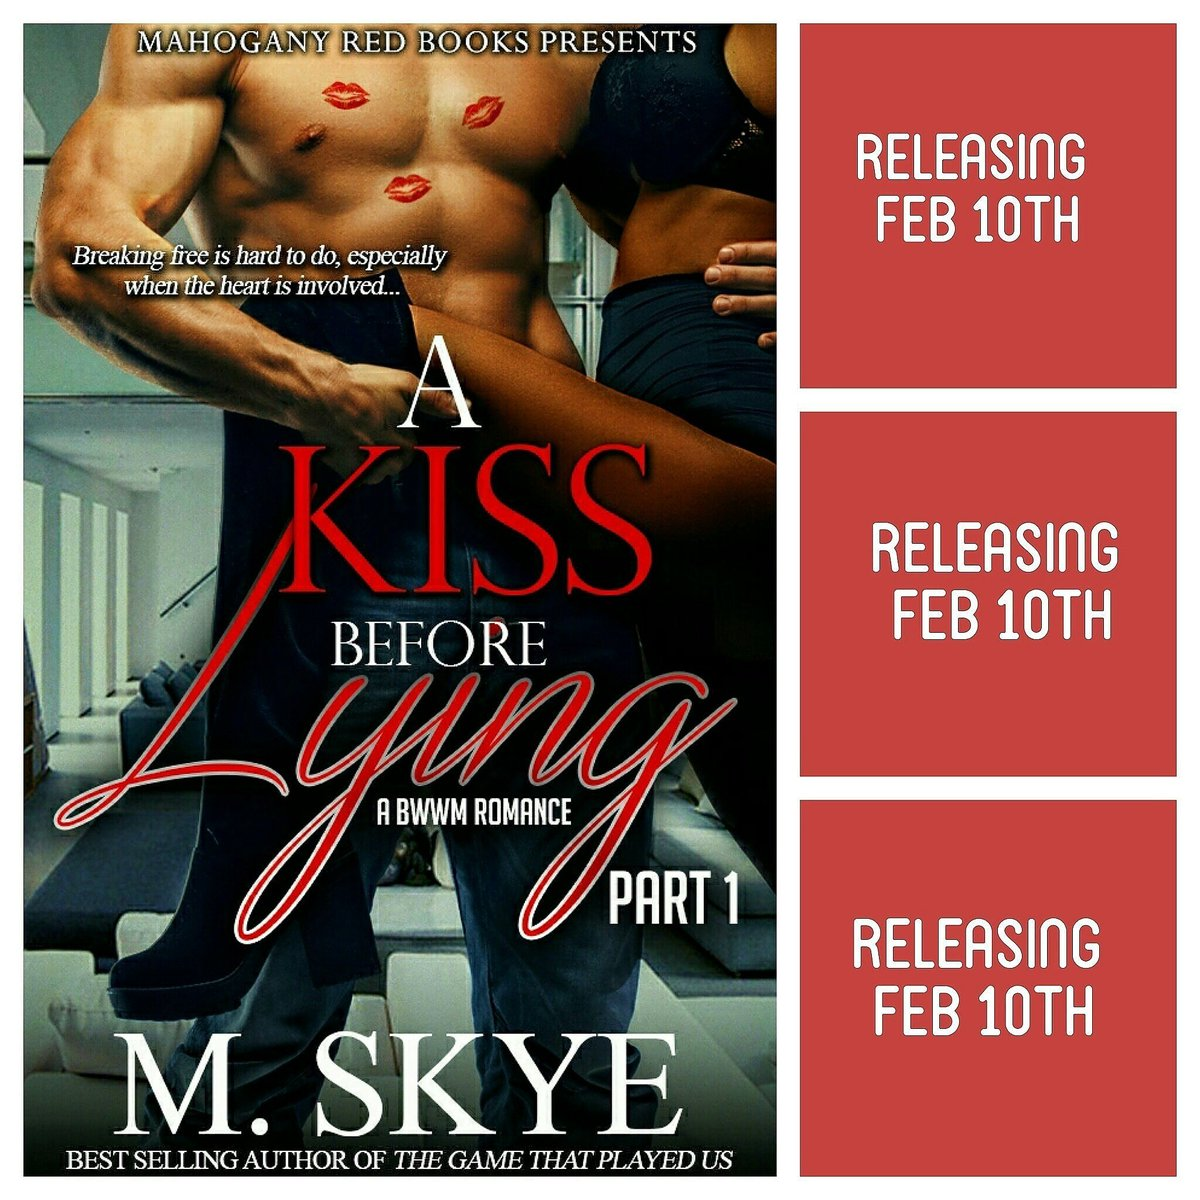 """Retweet the """"A Kiss Before Lying: A BBW Romance """" by @iammskye flyer for your chance to win a free copy https://t.co/BJk0zTSakE"""